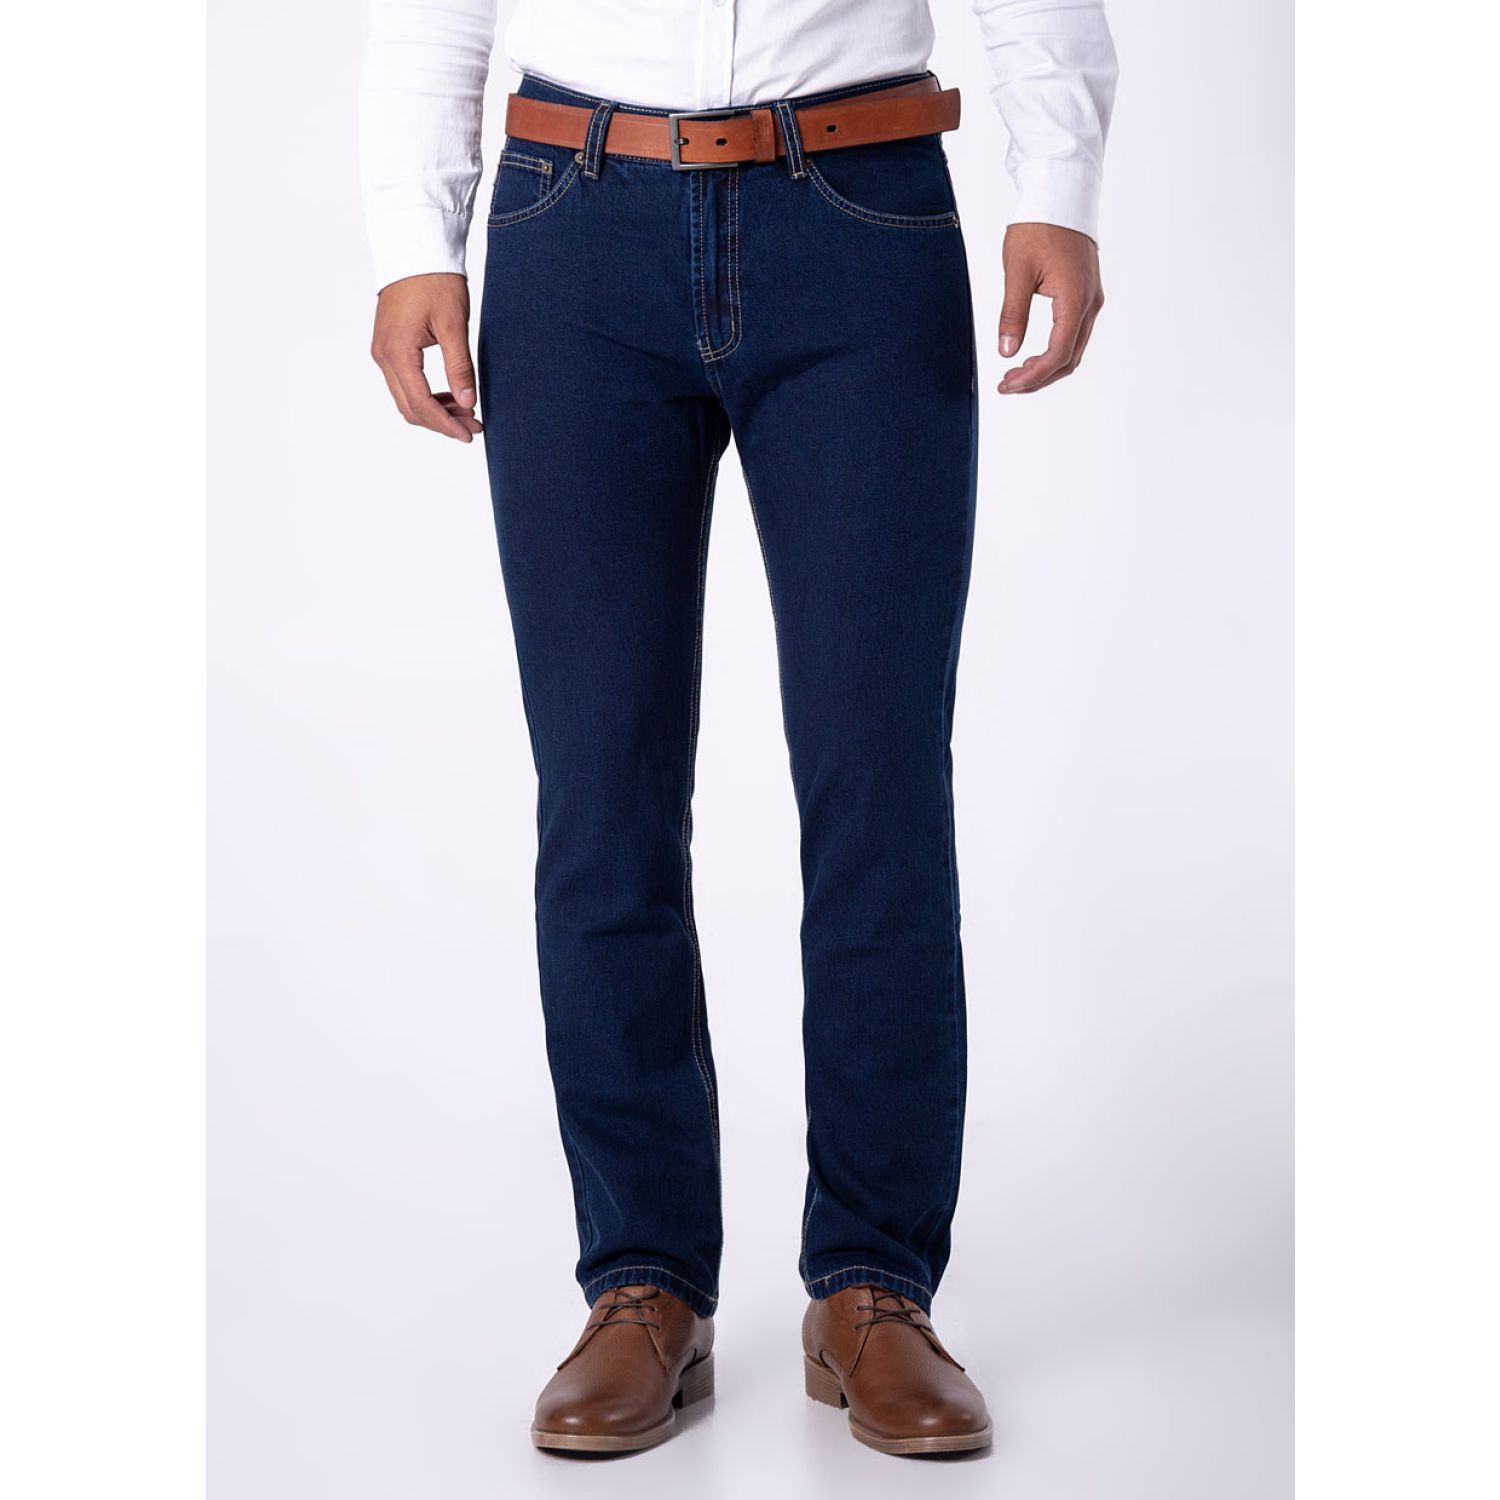 PIONIER Jeans Rigido Ronald POWDER BLUE Casual